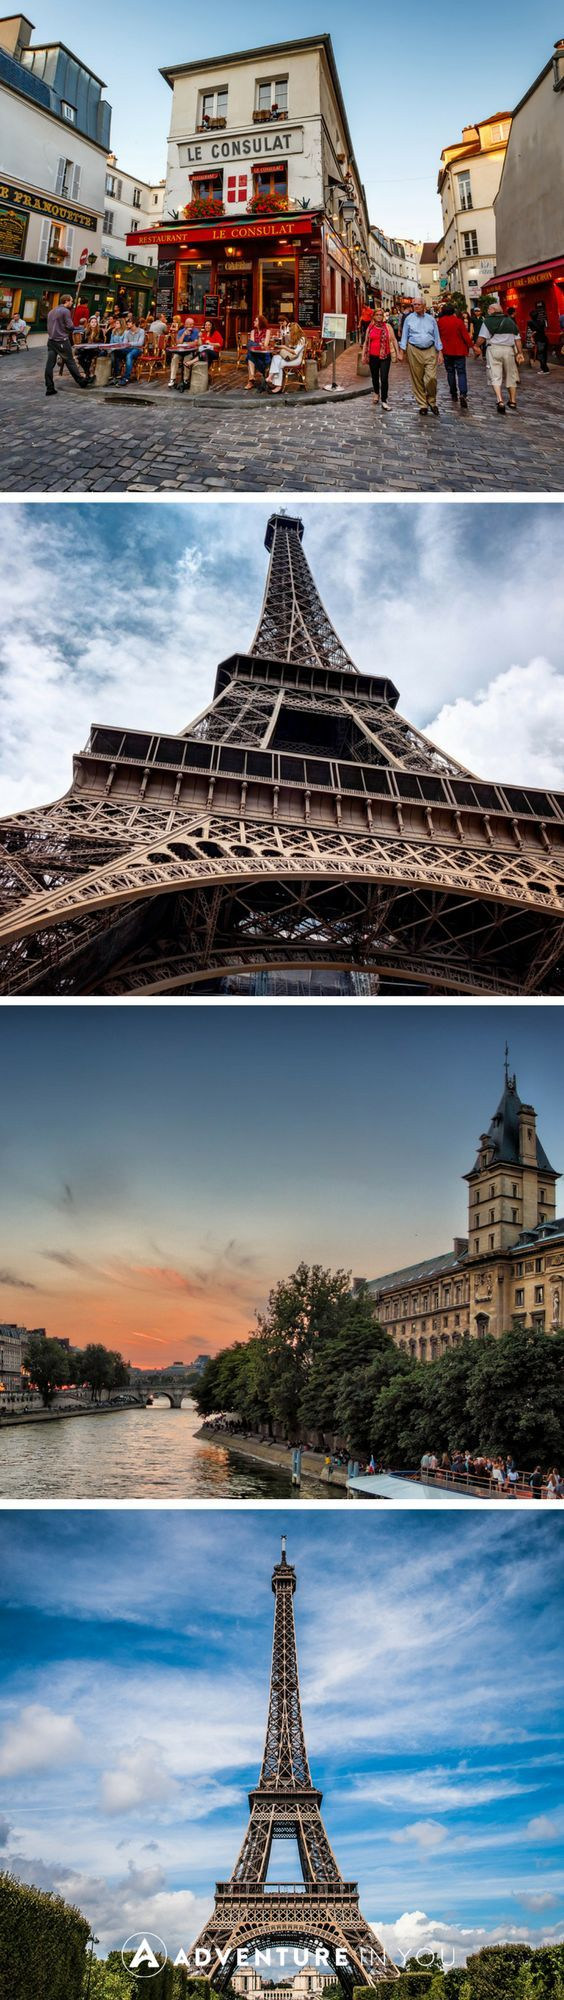 Paris, France | Fall in love with Paris through this stunning photo walk giving you glimpse of a day walking around the streets of this charming city.